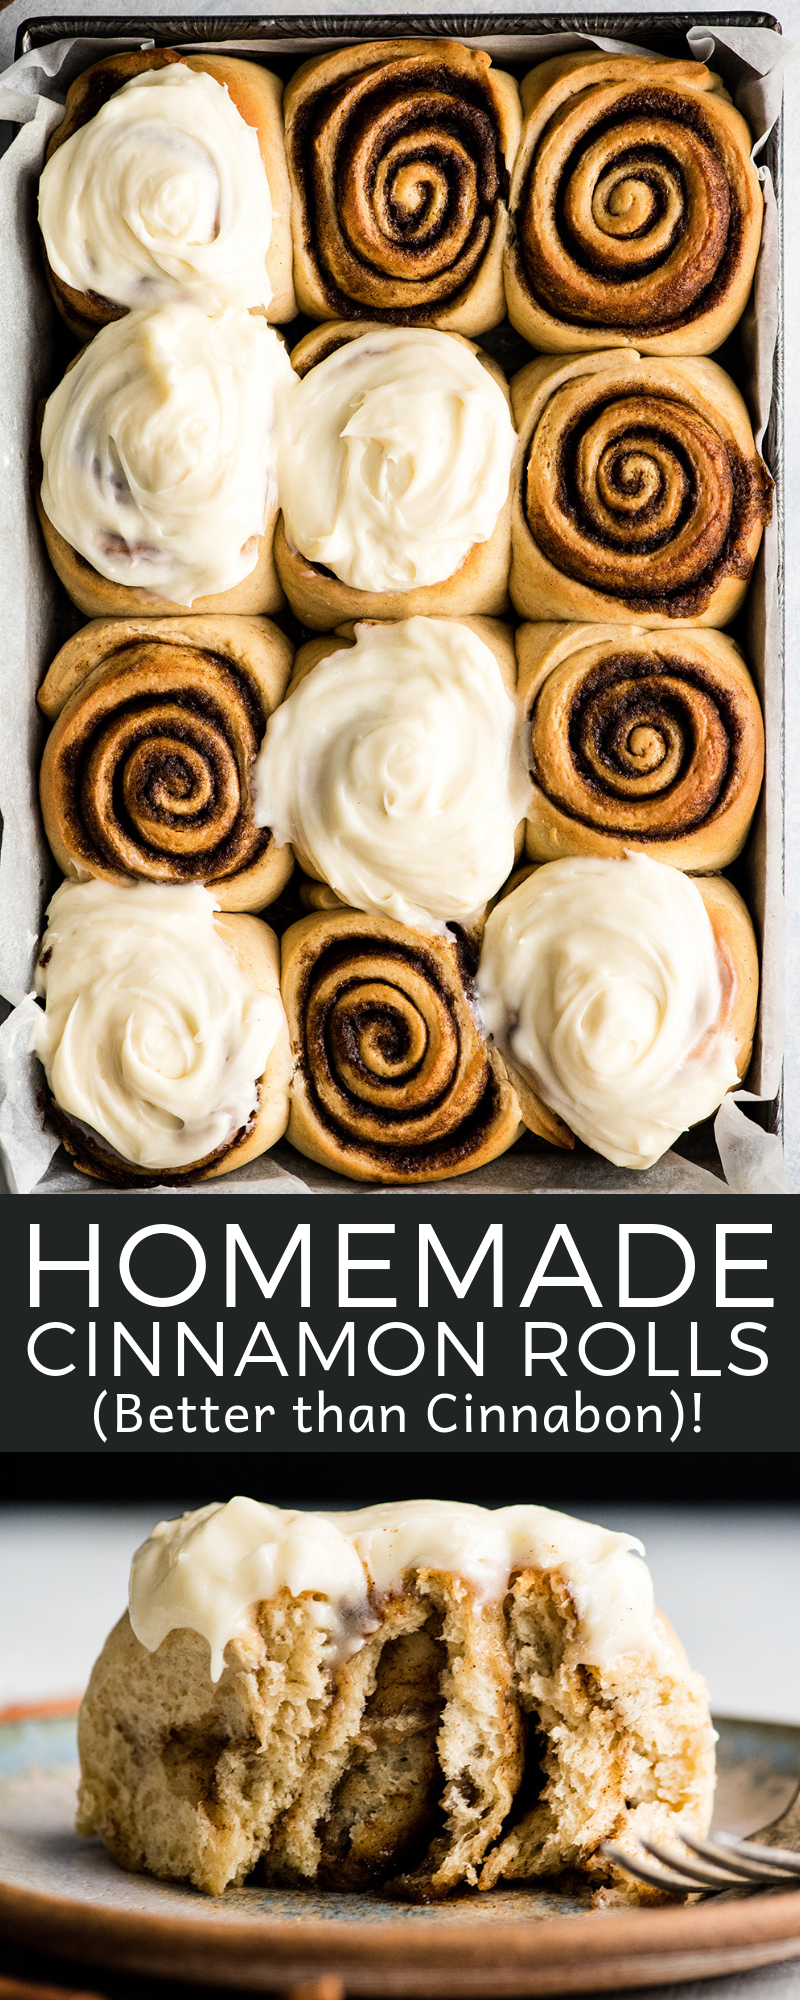 Best Homemade Cinnamon Rolls Recipe (Better than Cinnabon) - JoyFoodSunshine